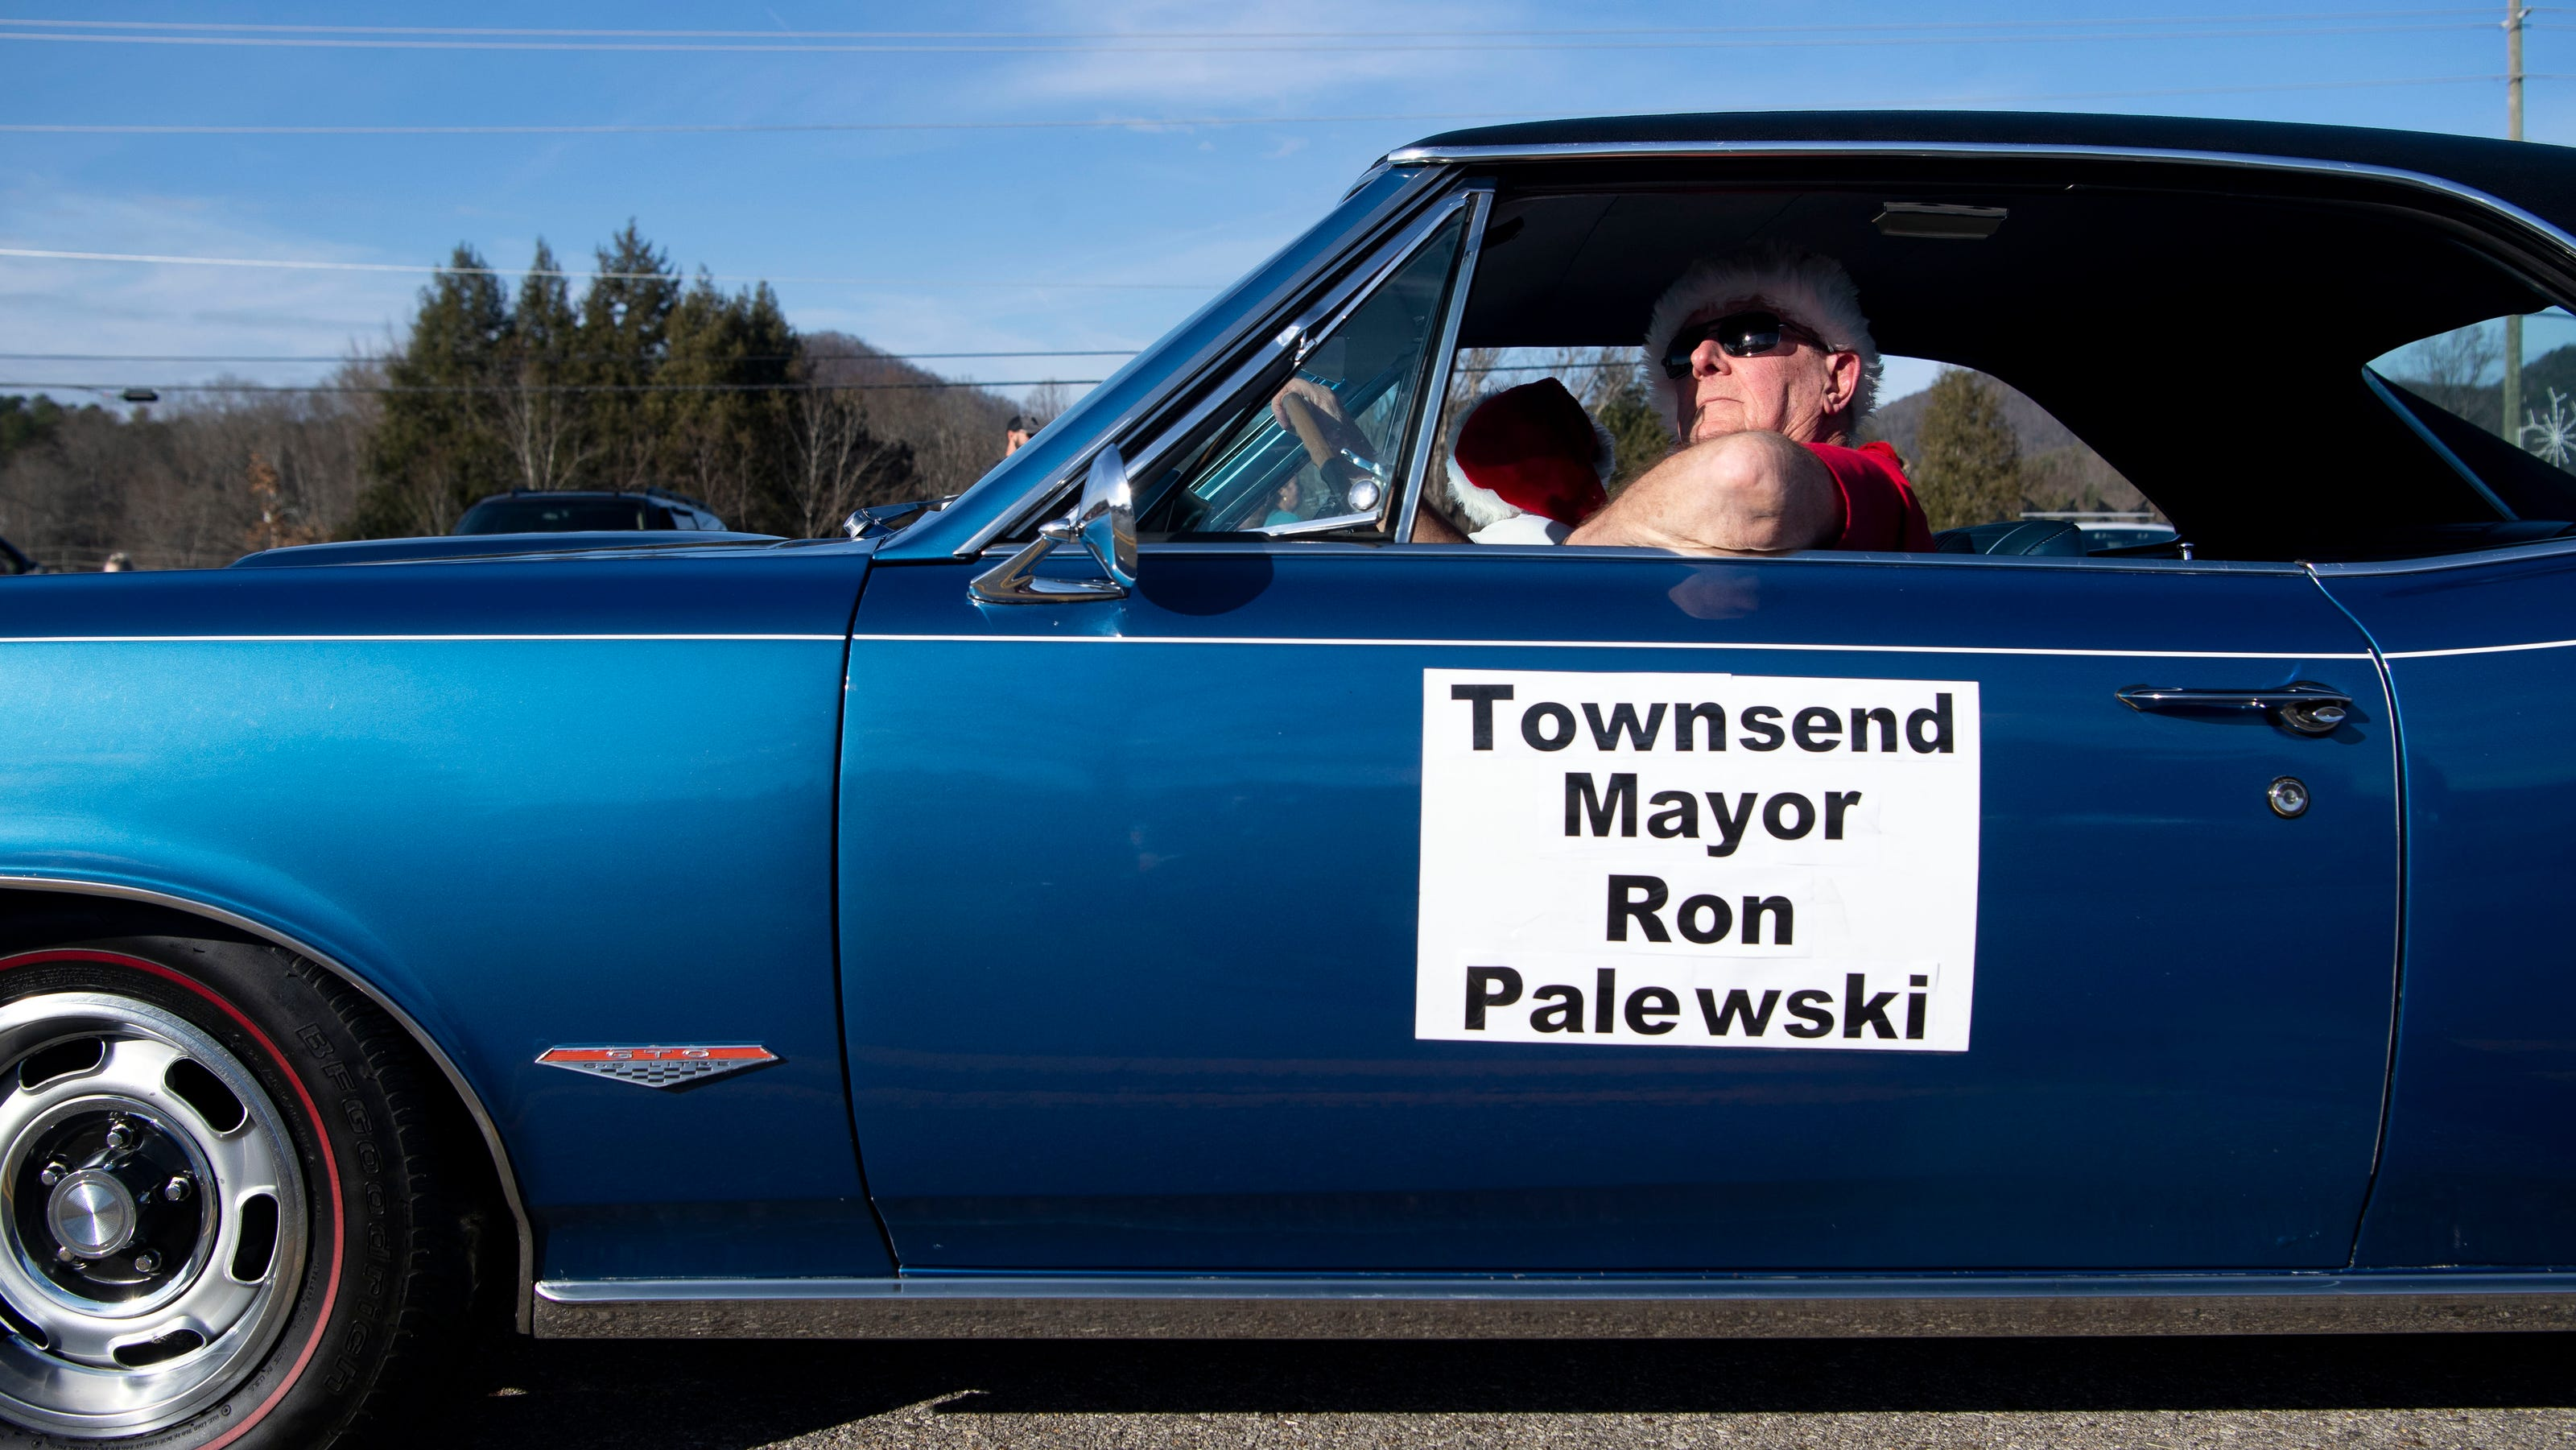 Townsend Christmas Parade 2020 Townsend announces death of city mayor Ron Palewski